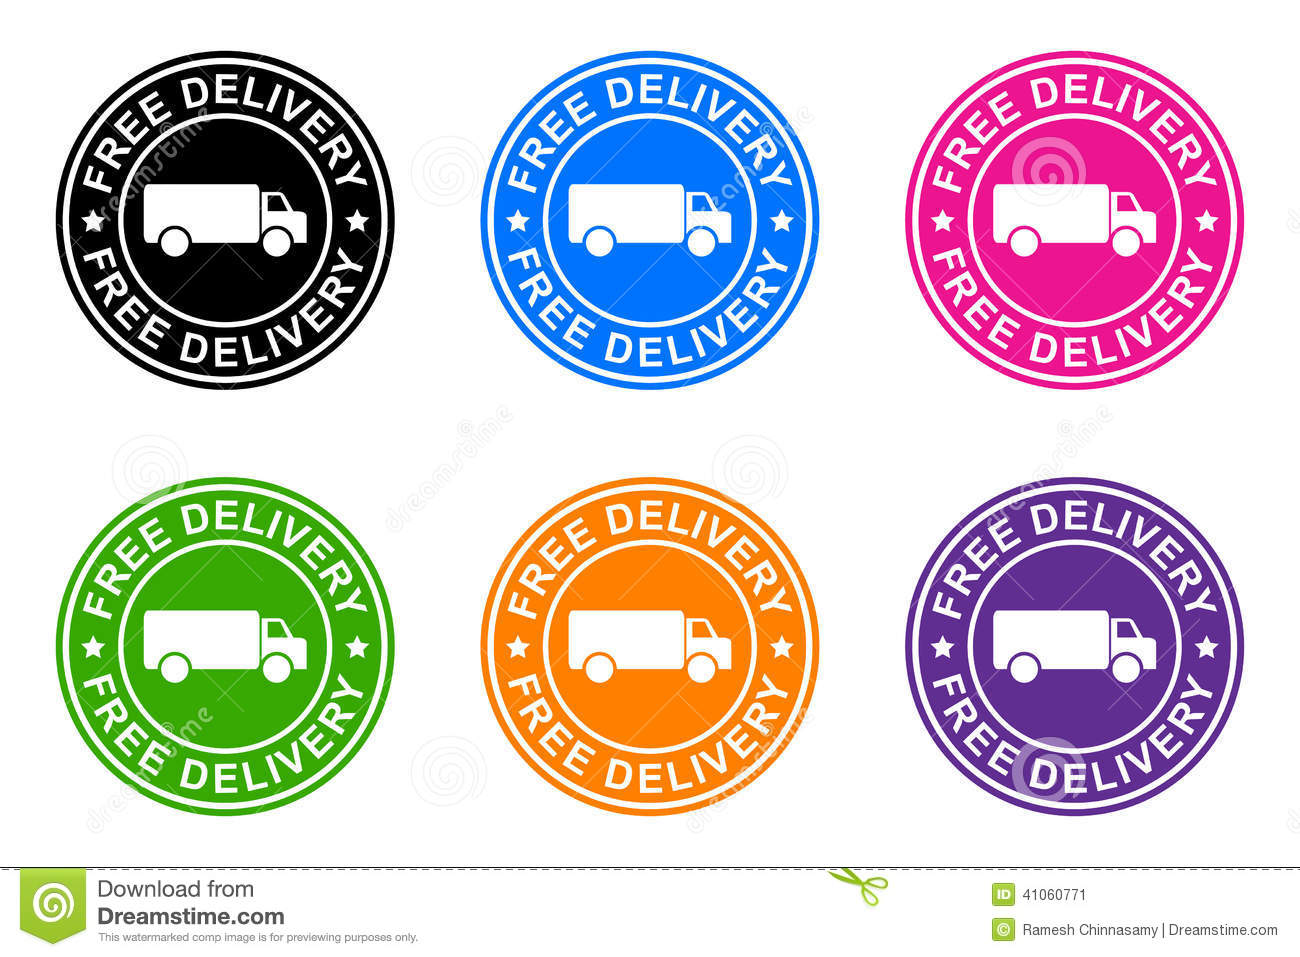 Free delivery sticker on the white background